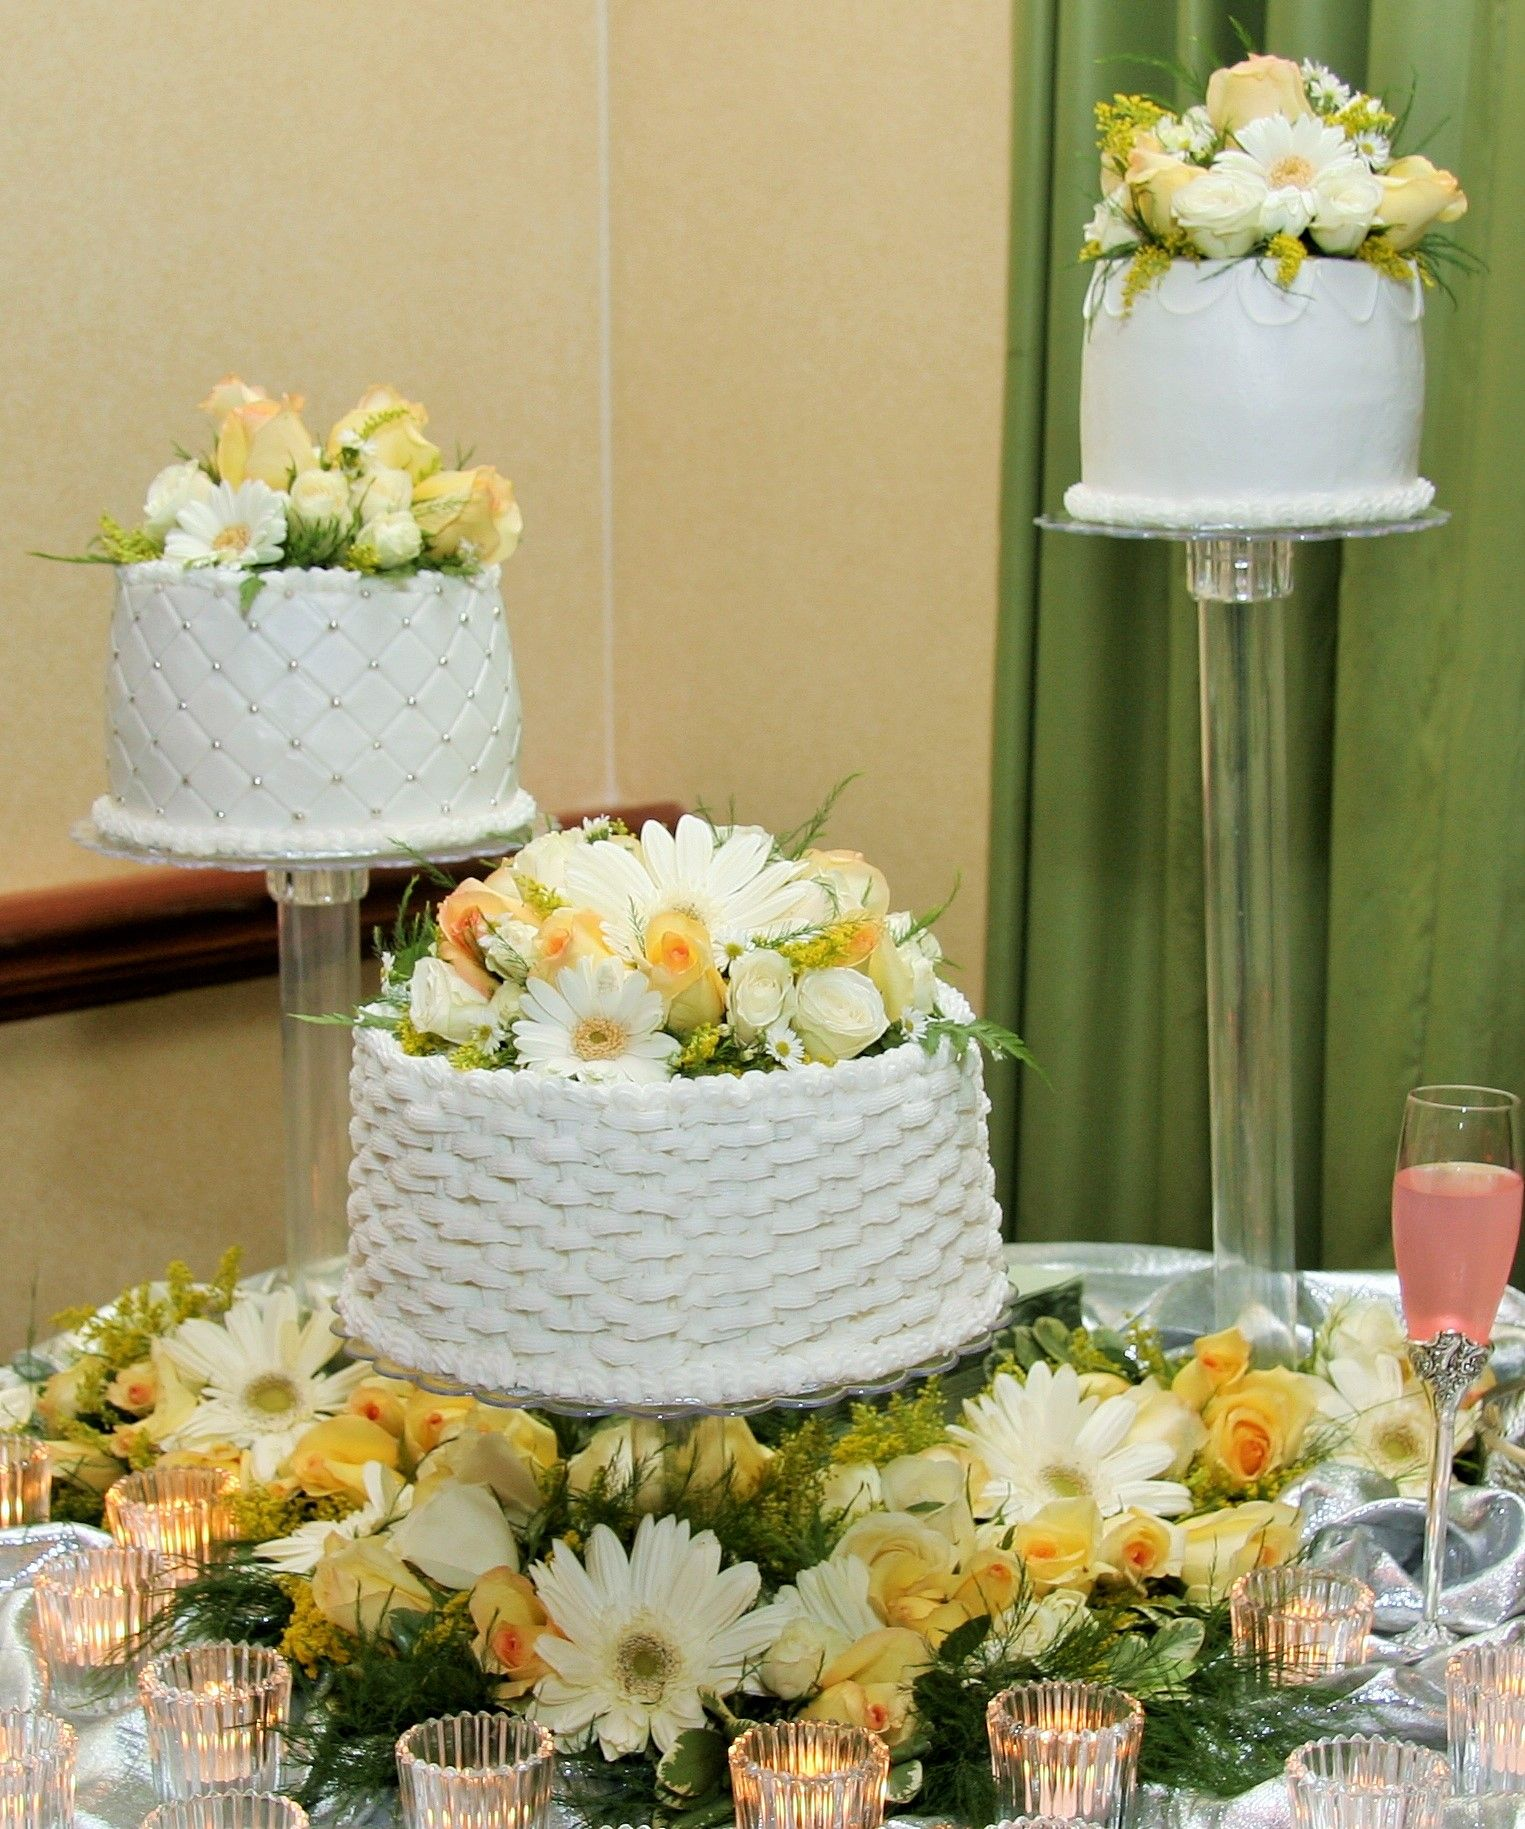 3 Separate Tier Round Wedding Cake with Design and Flowers | Cakes ...